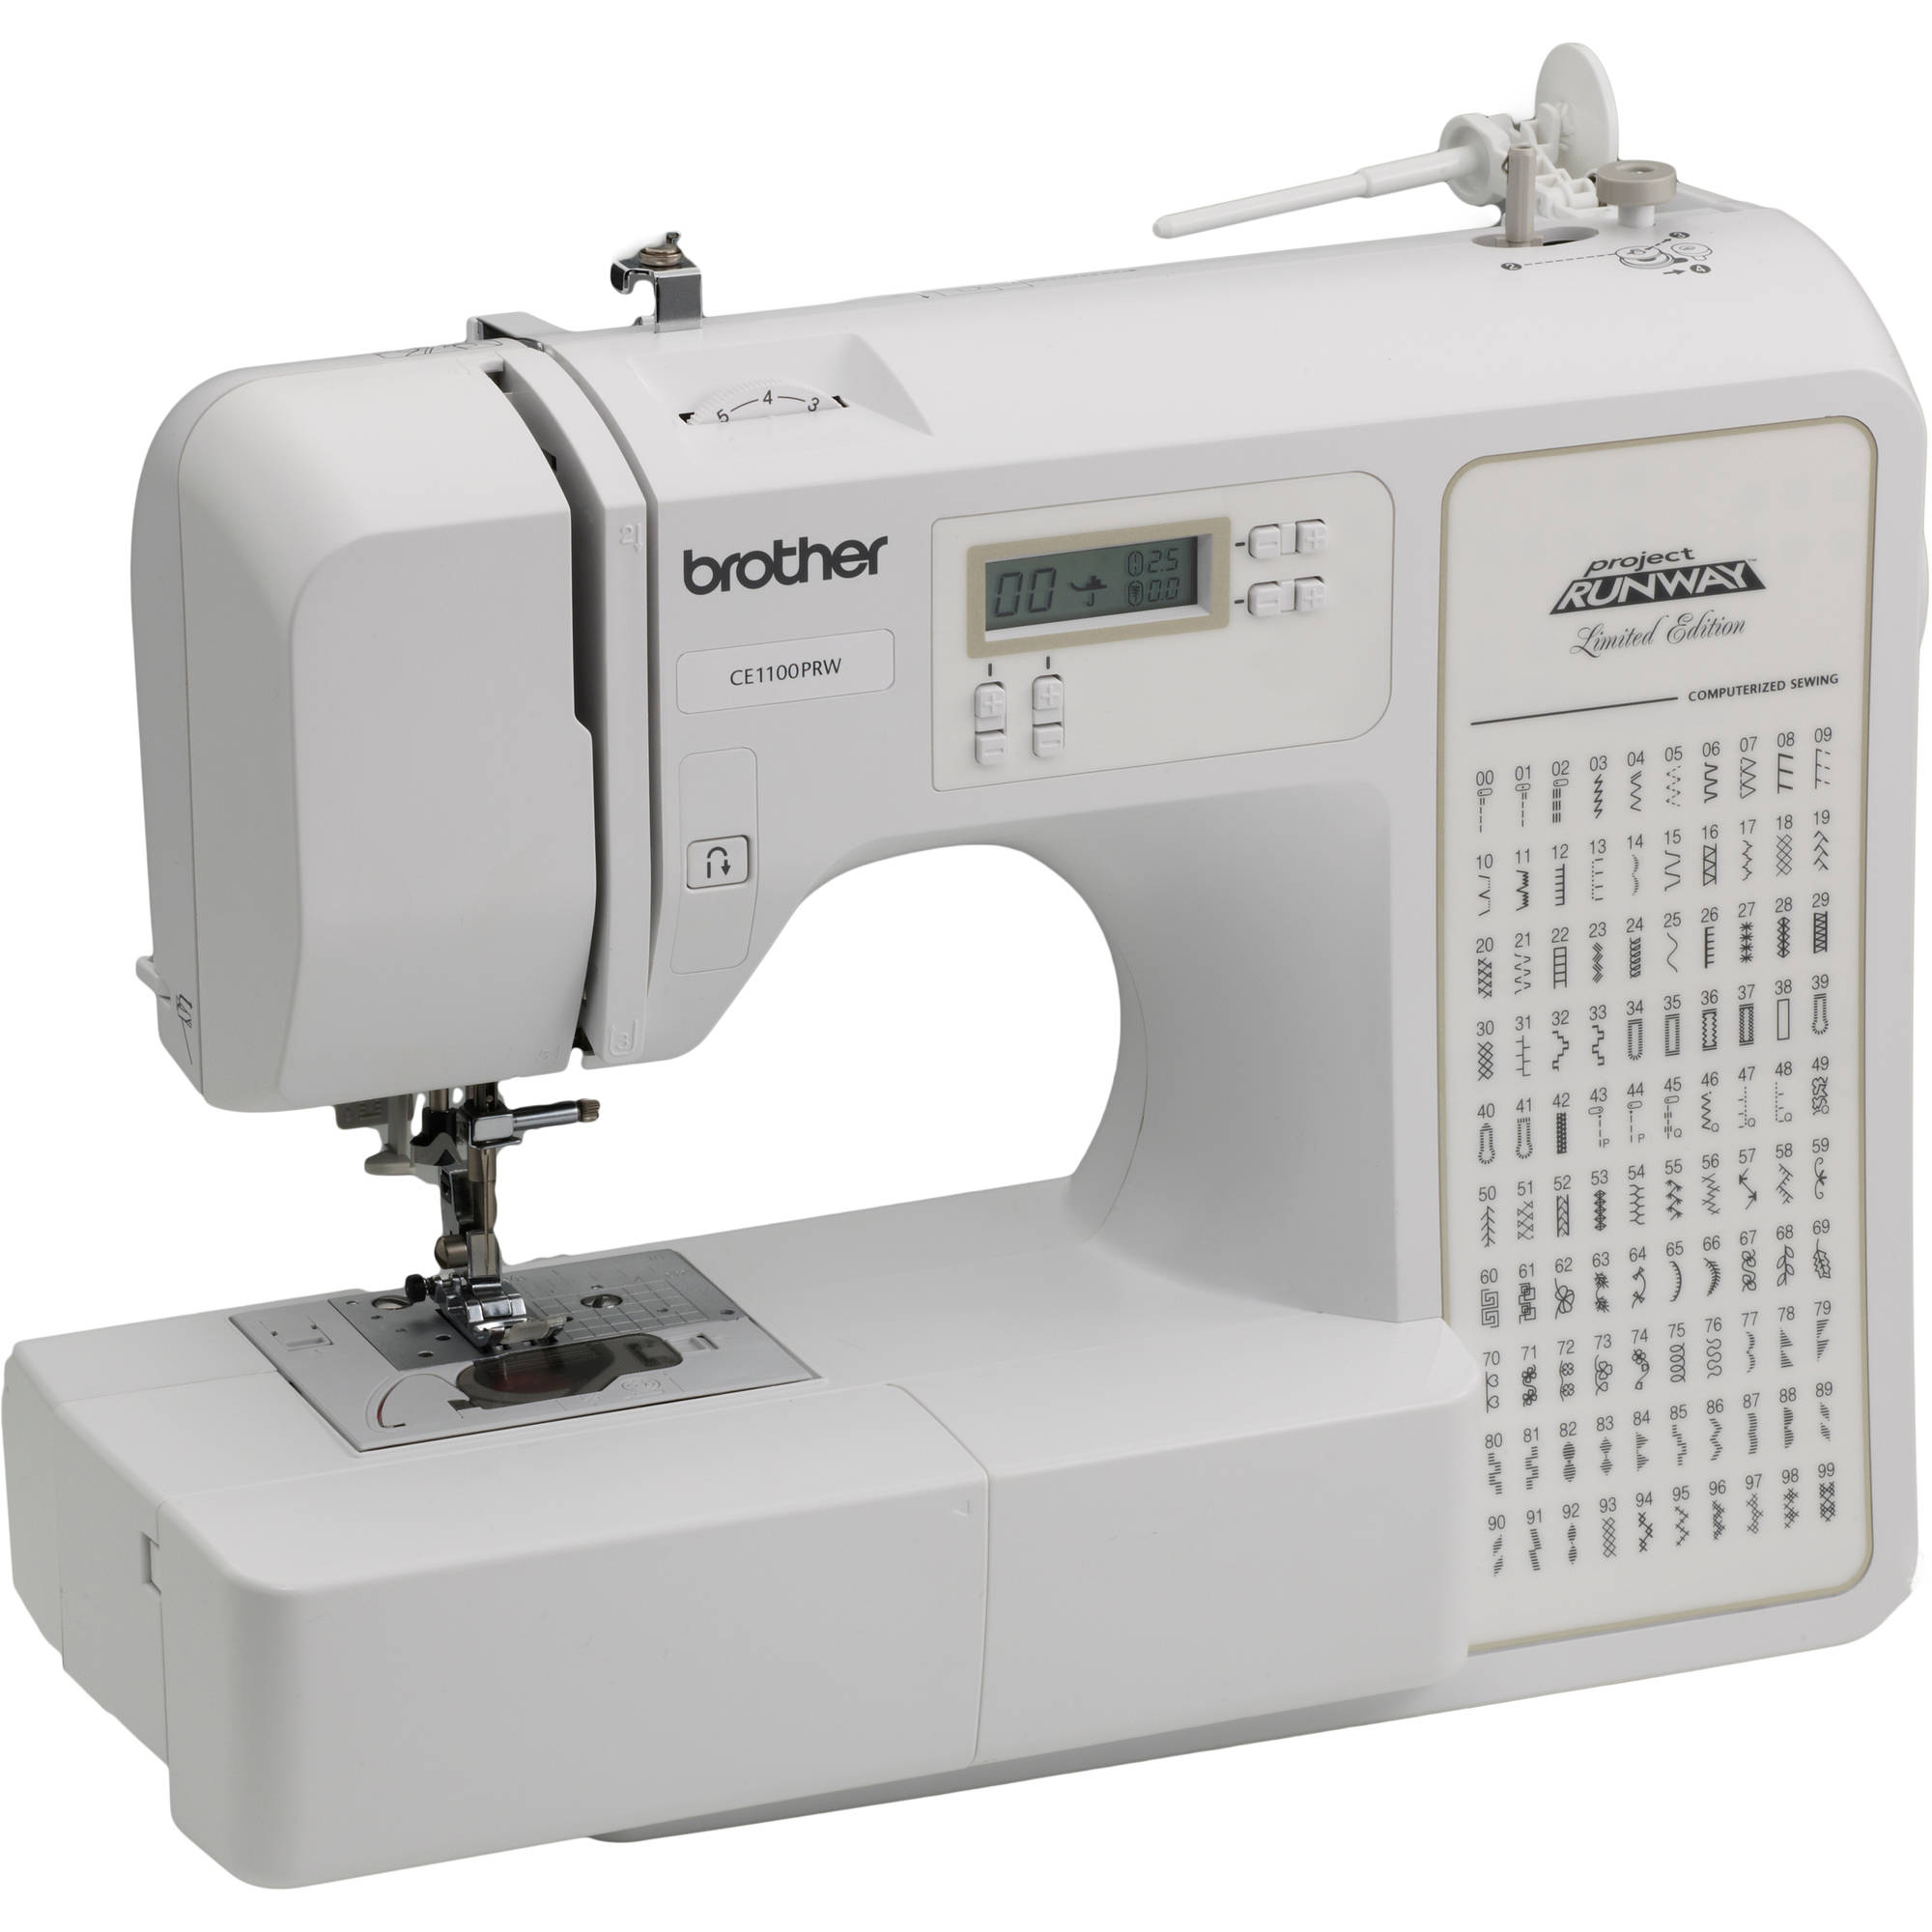 Brother 100-Stitch Project Runway Computerized Sewing Machine, CE1100PRW